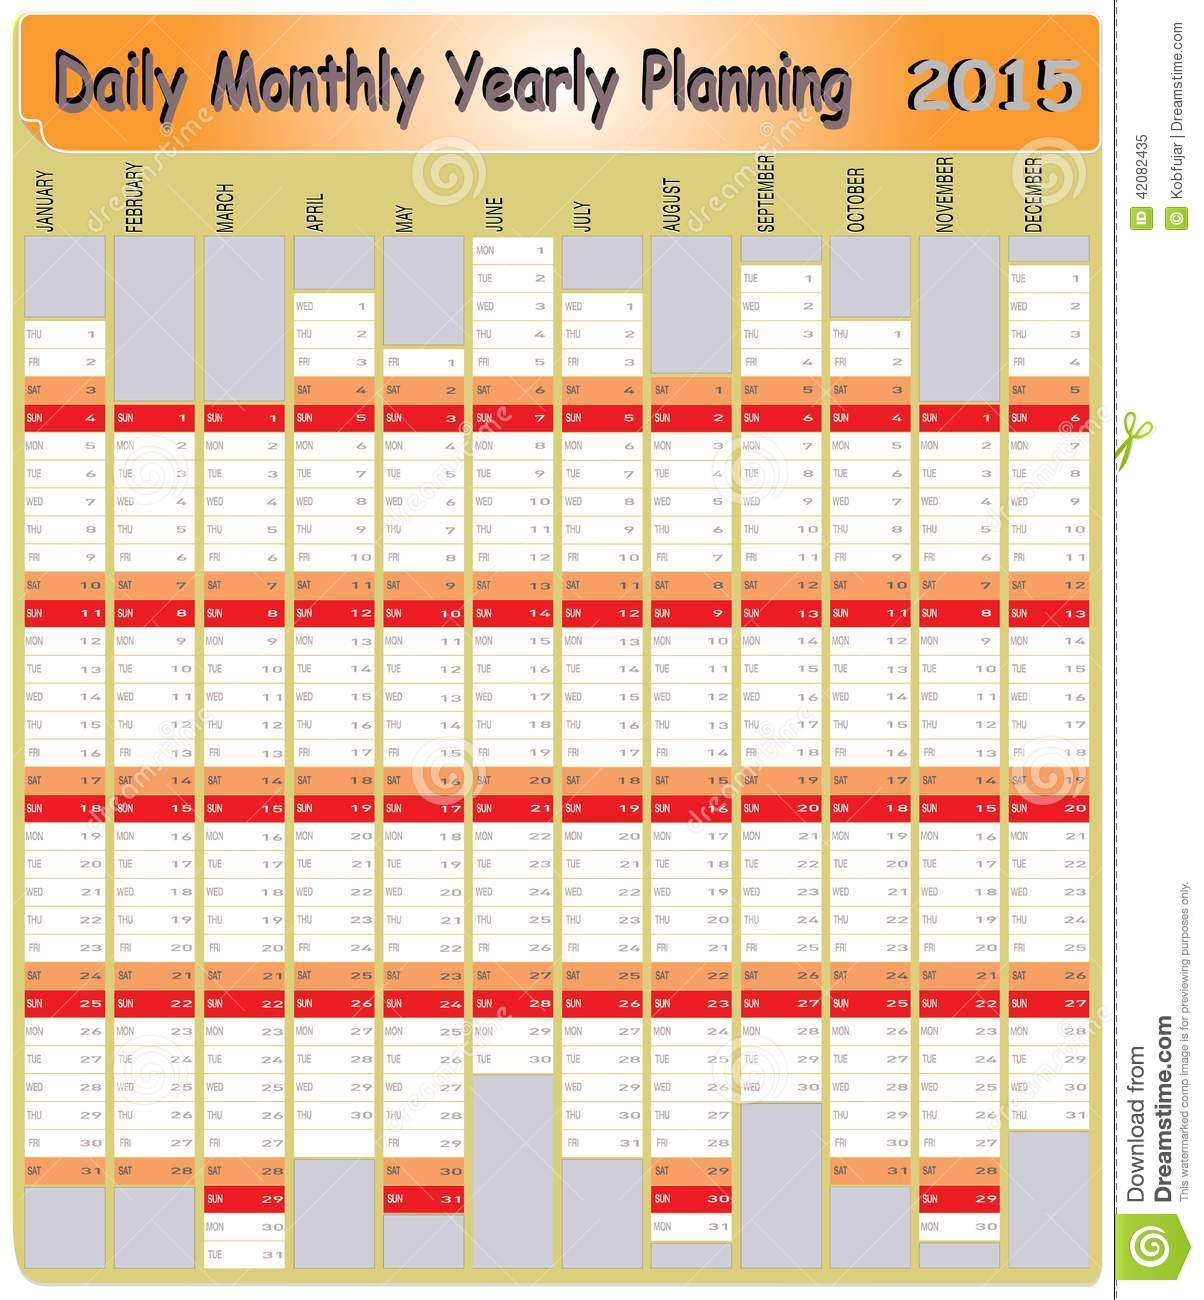 Calendar Planner Vector Free : Daily monthly yearly calendar planning chart stock